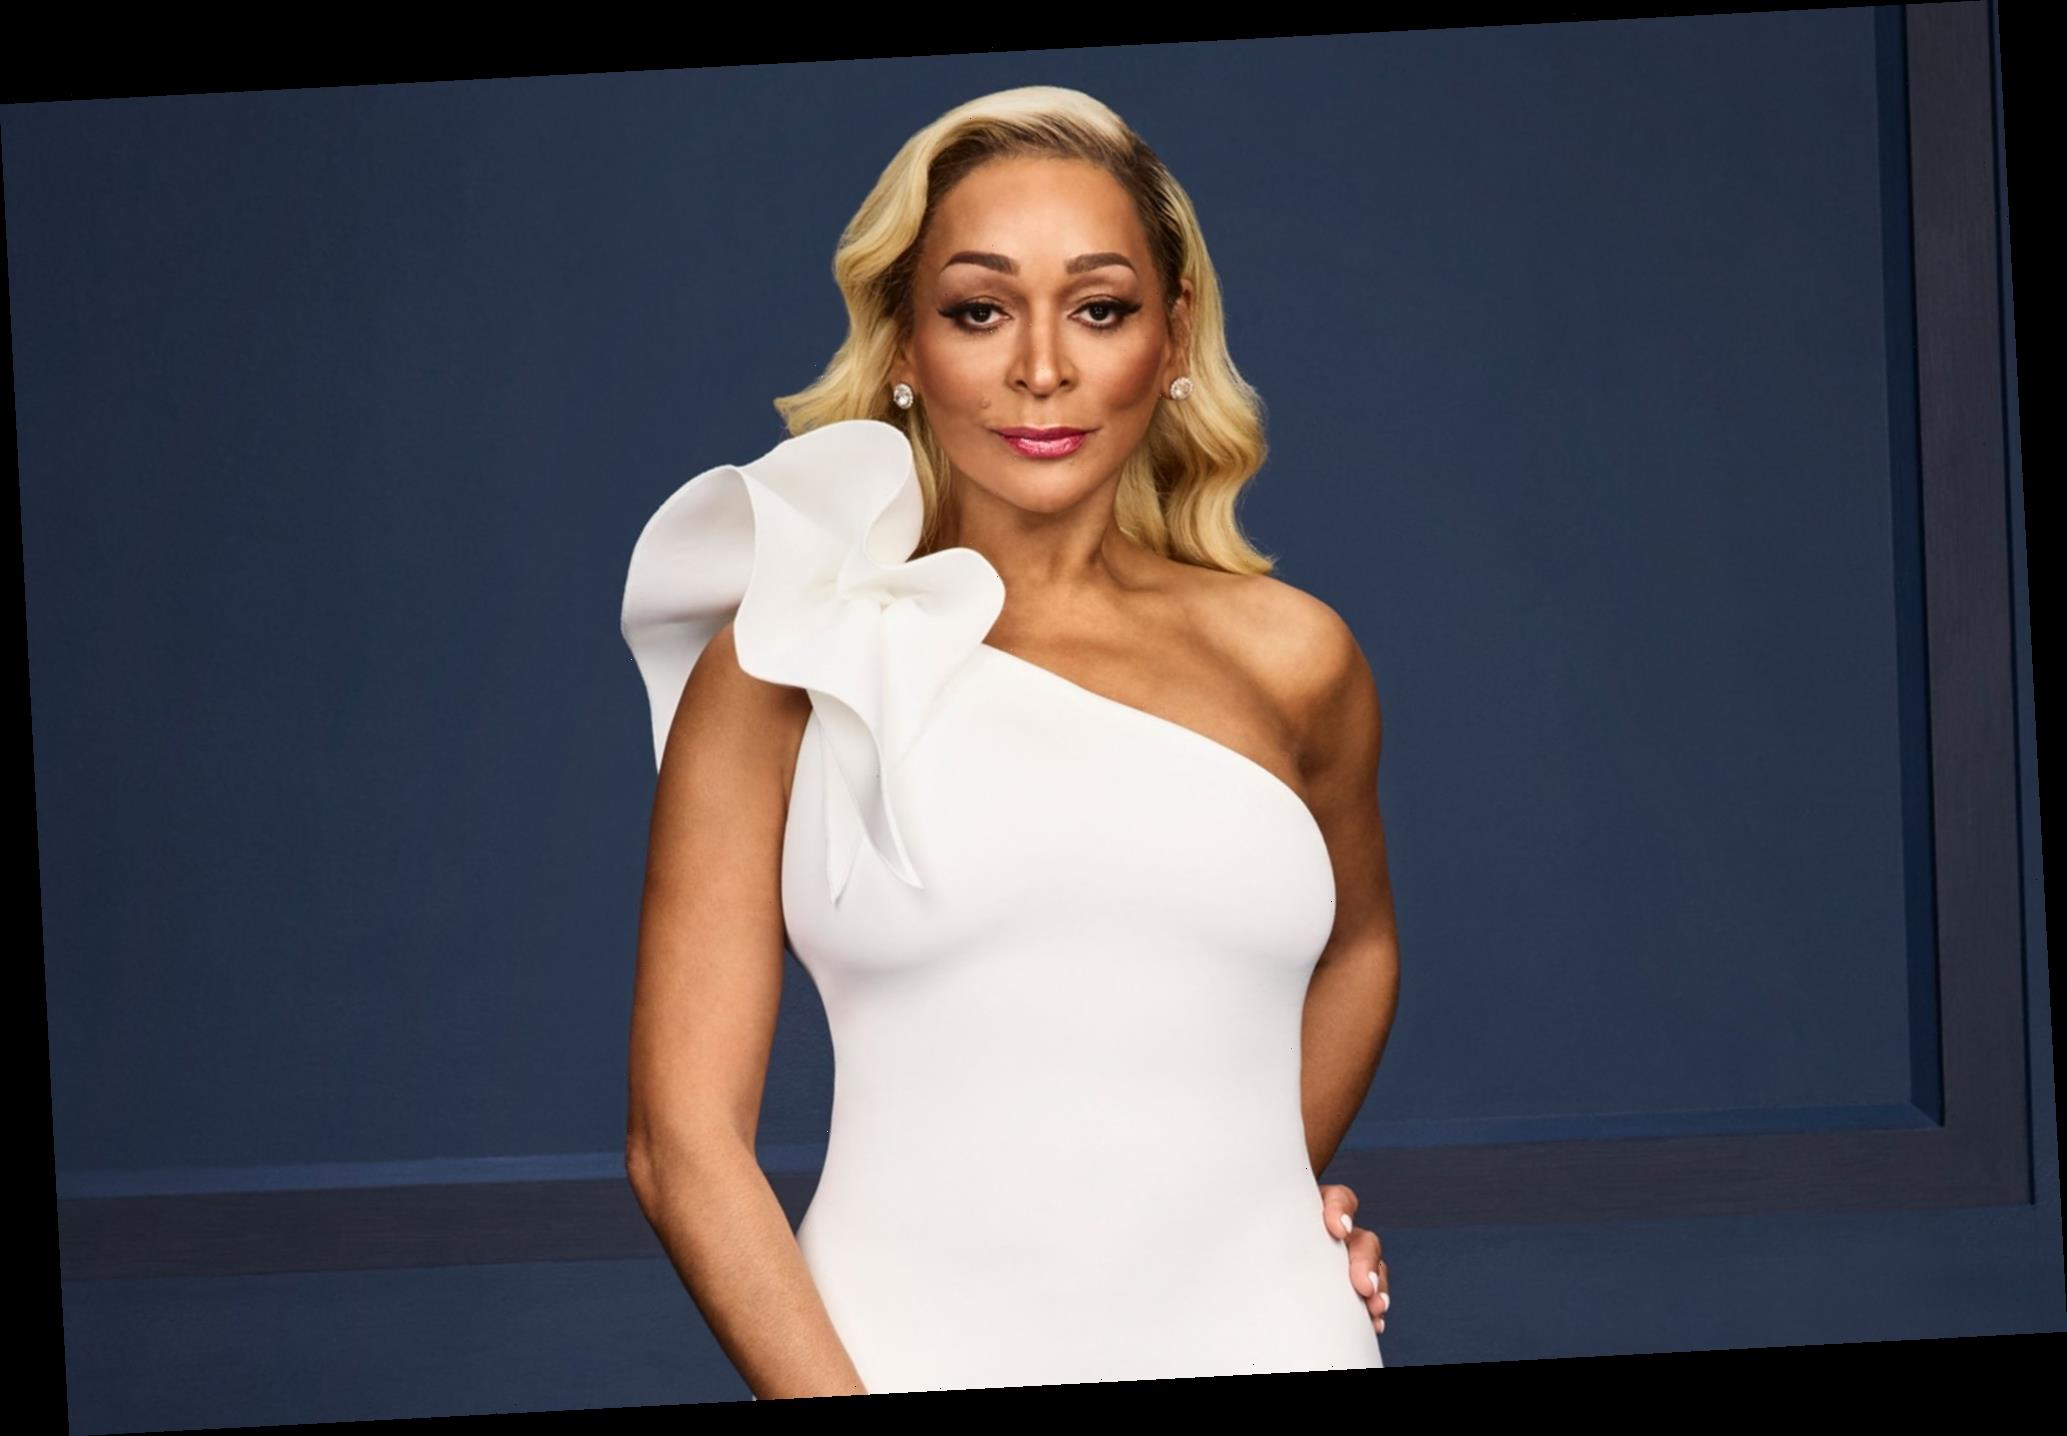 RHOP: Karen Huger Walks Out of Her Own Event After Drama Erupts over Monique Samuels Invite